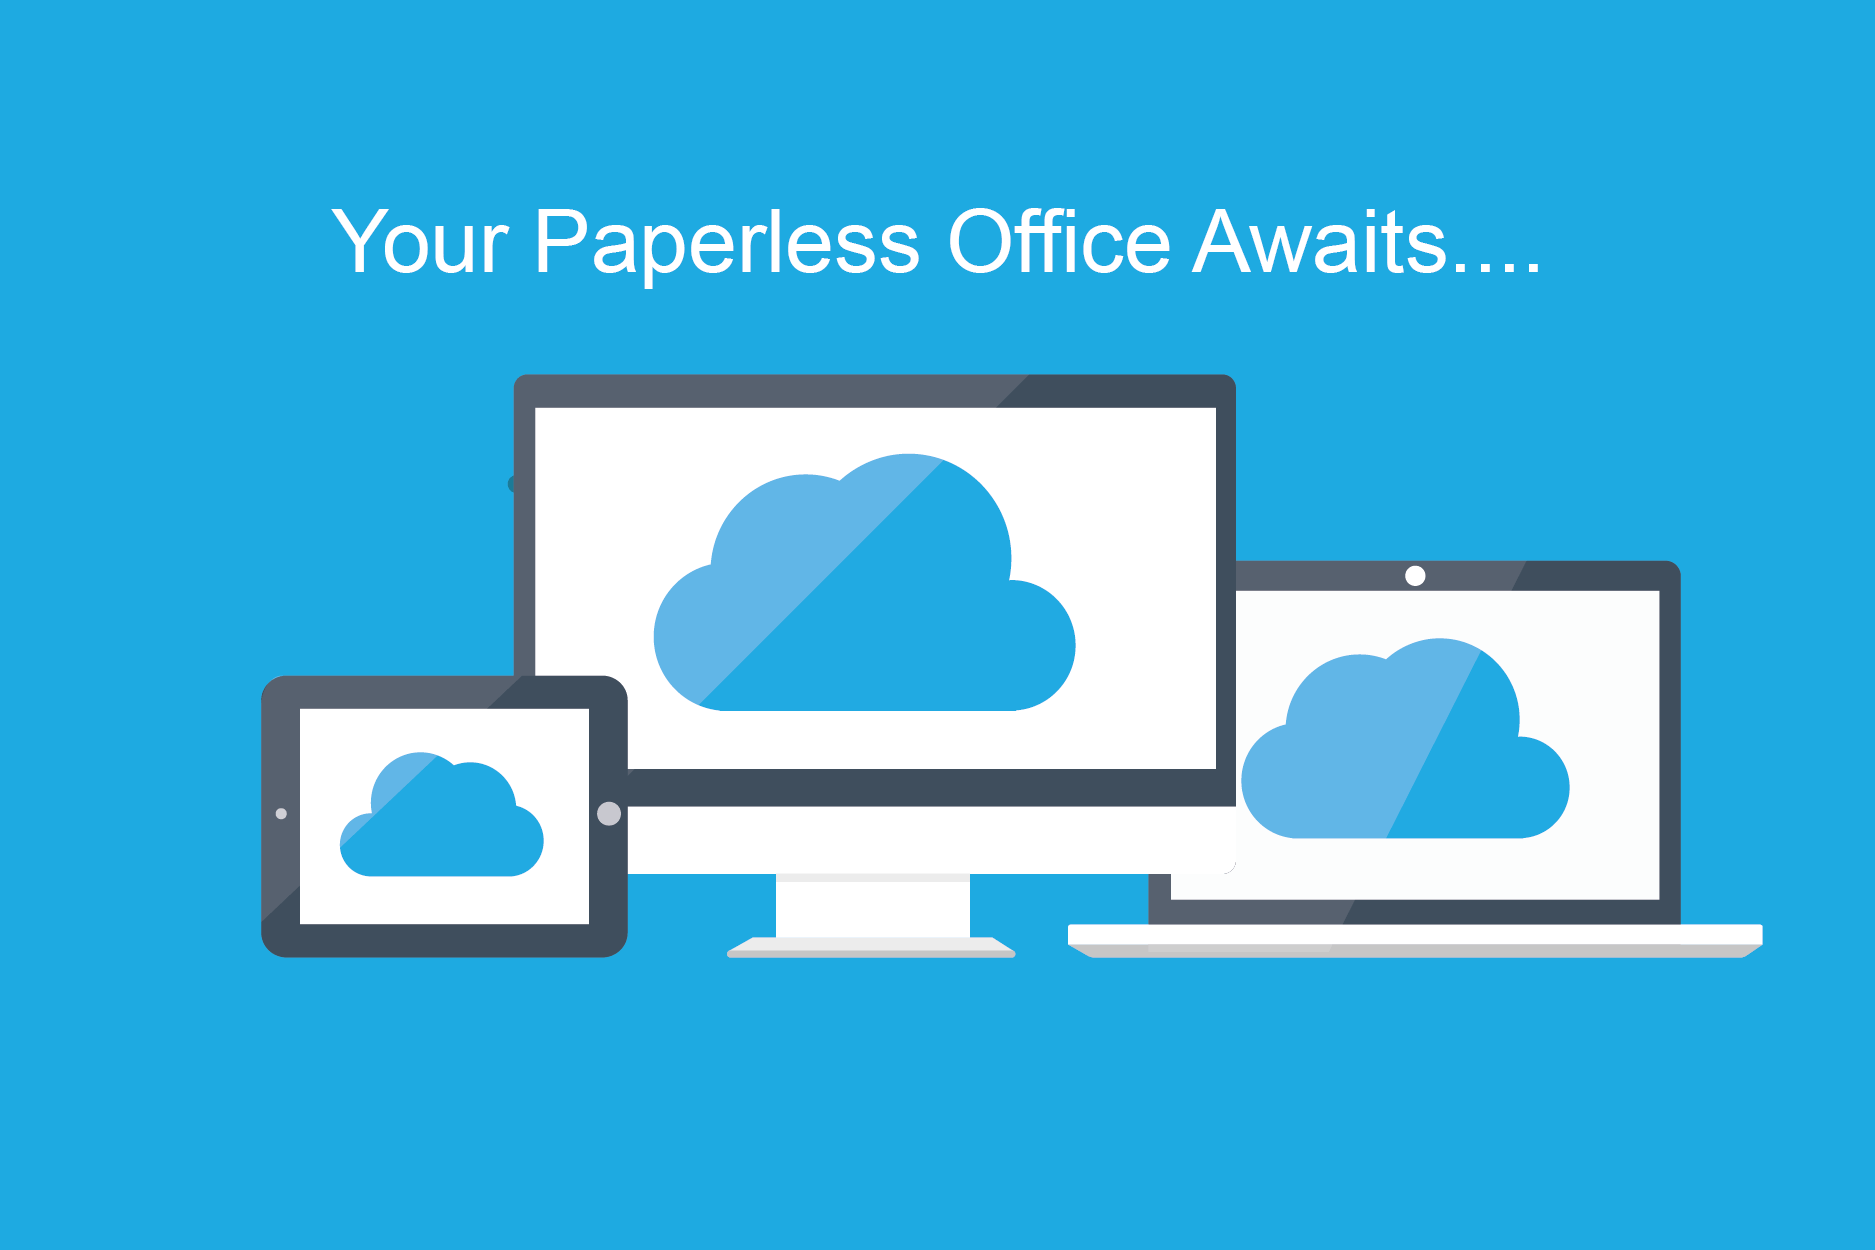 Your_Paperless_Office_Awaits (00018893-2xC5E42).PNG